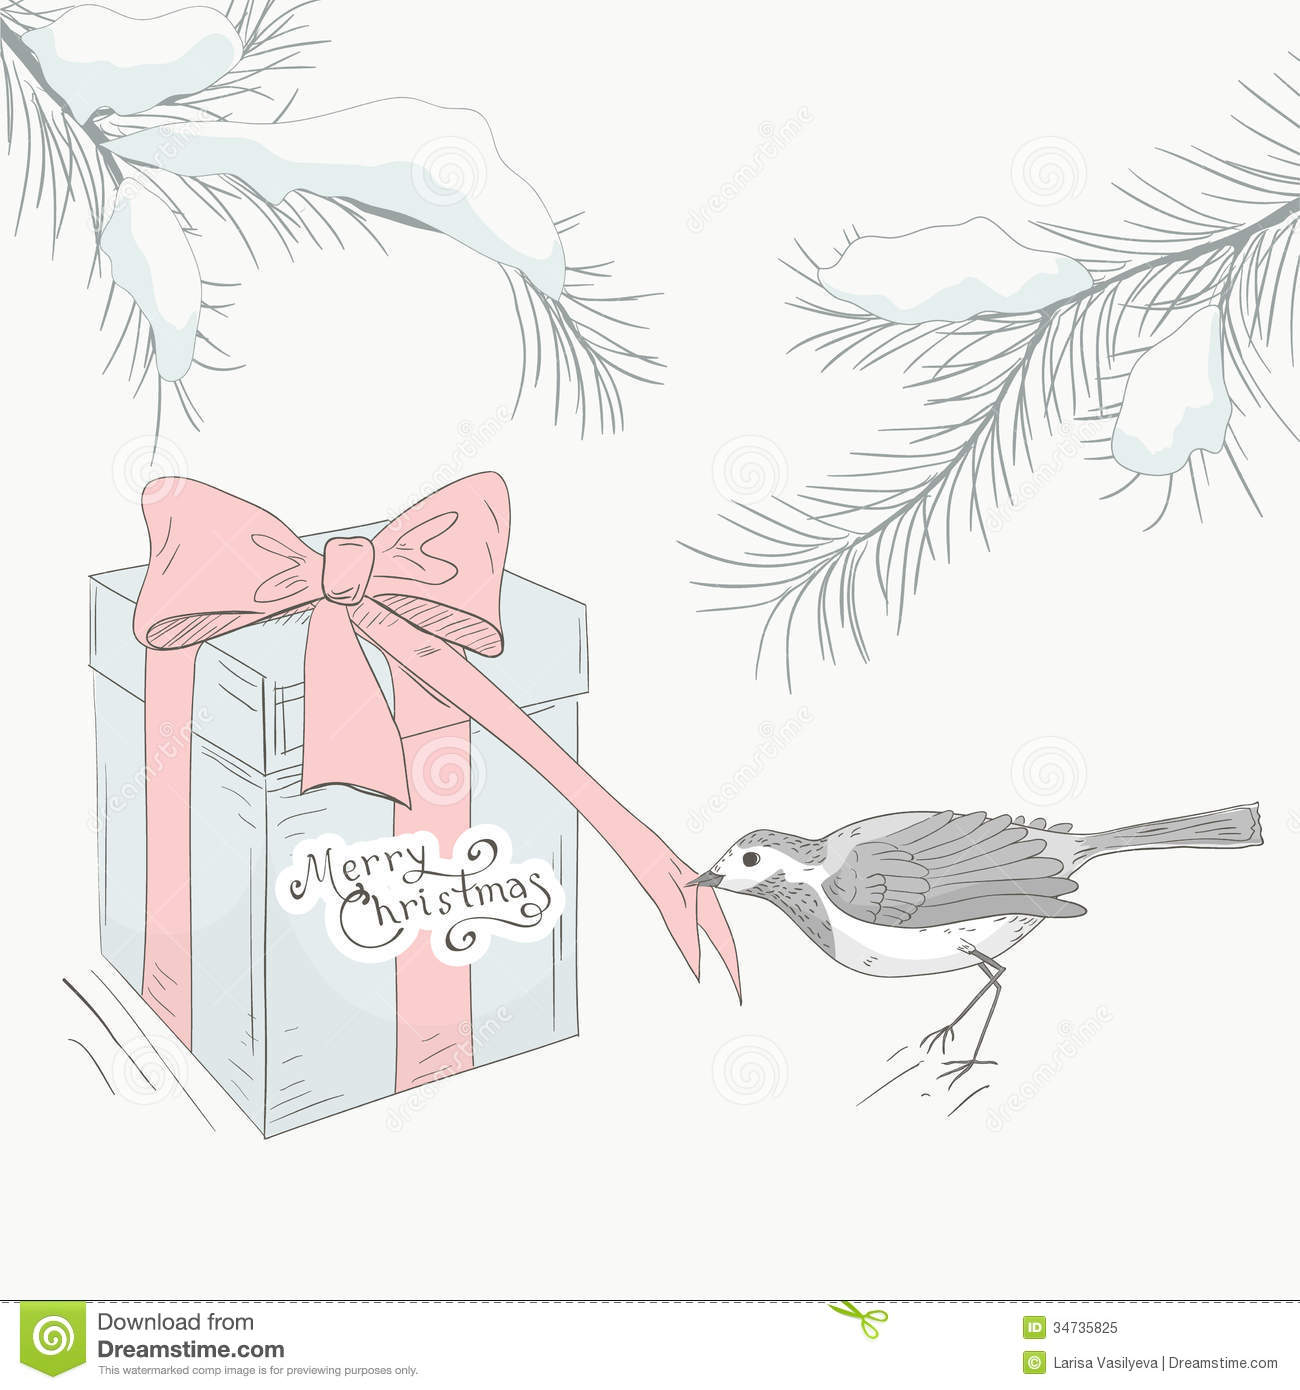 Greeting Card With Bird 3 Royalty Free Stock Photo